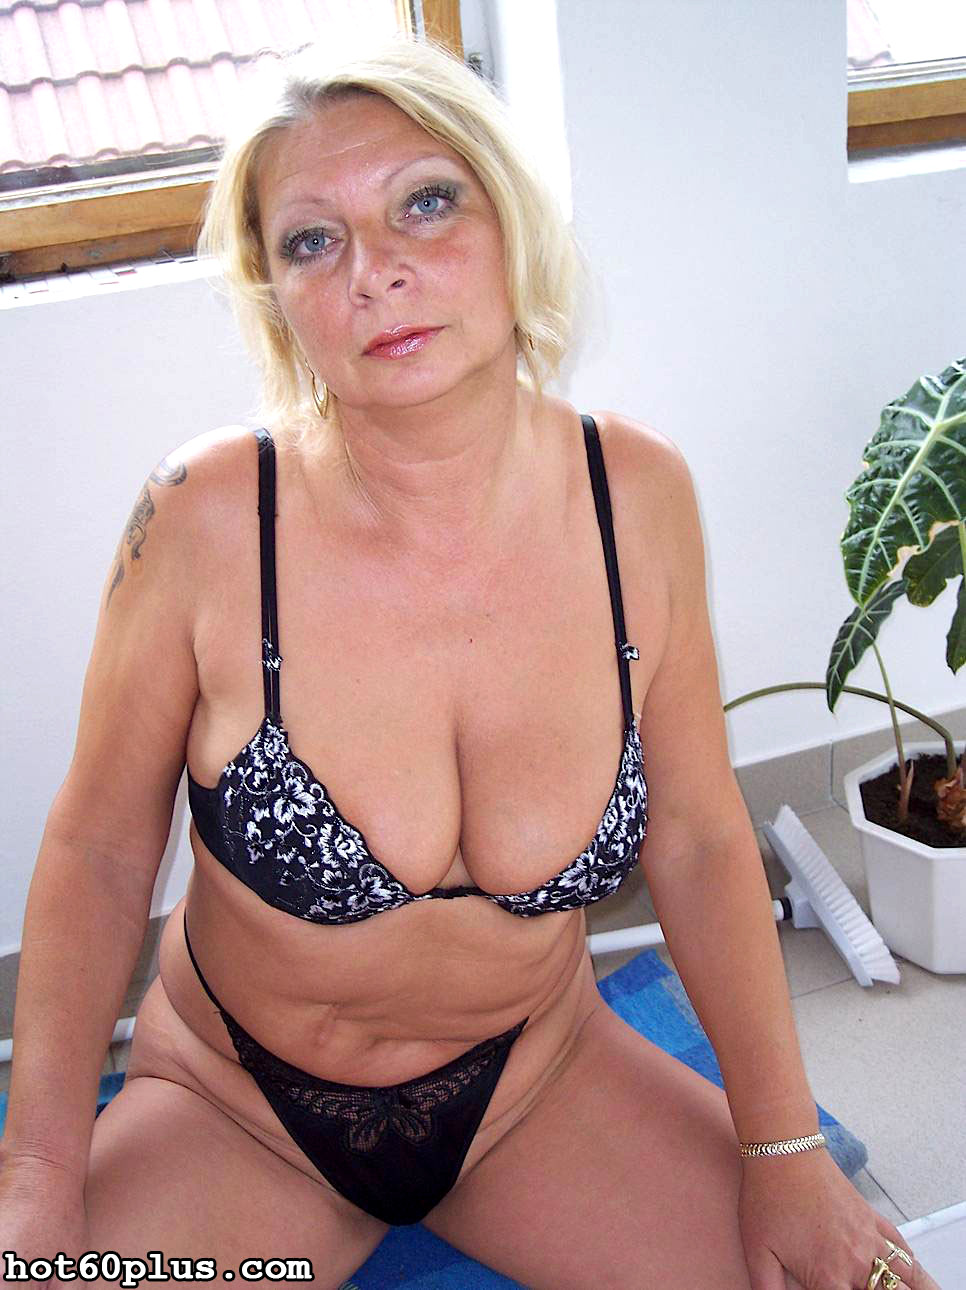 Babe Today Hot 60 Plus Irena High Def House Wife Thread